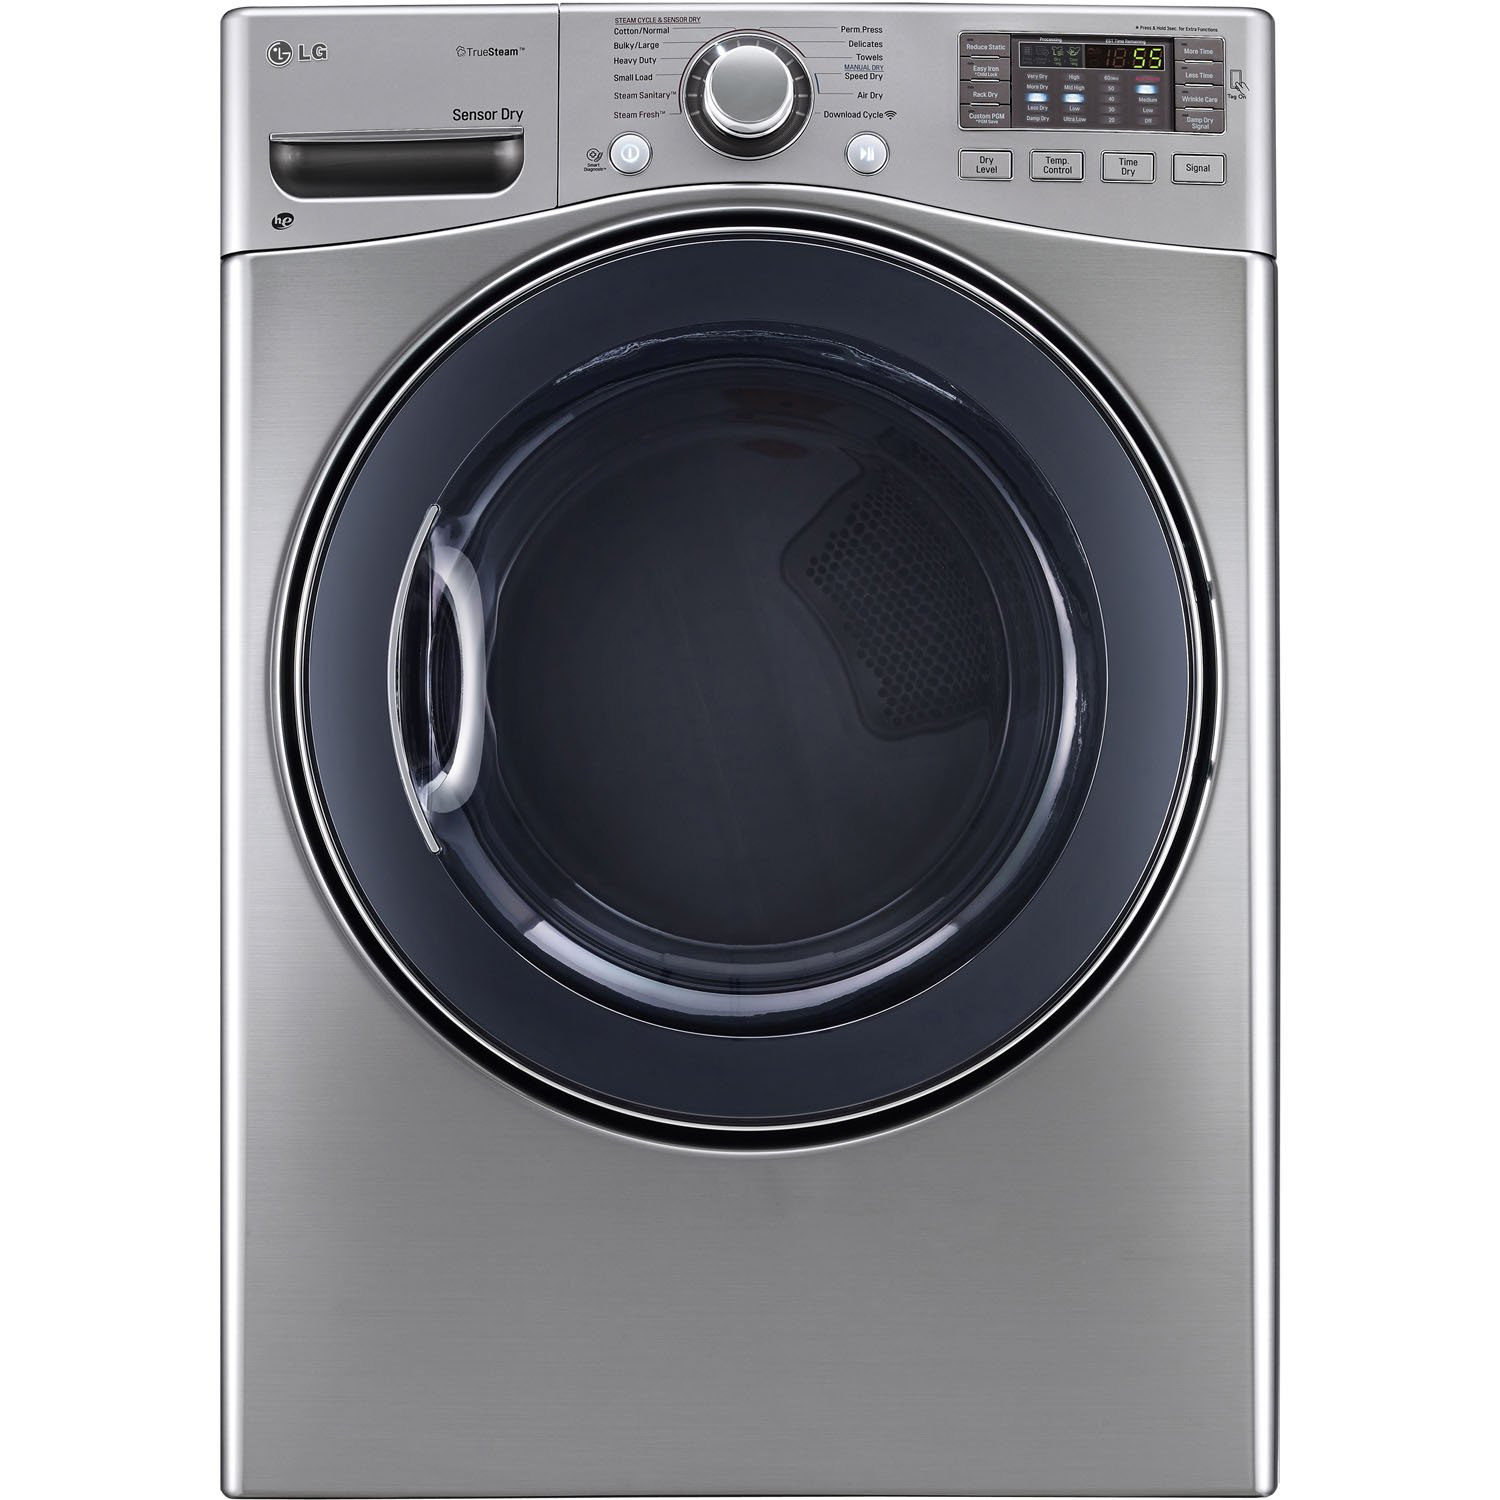 LG DLEX3570V 7.4 Cu. Ft. Ultra Capacity Front Load Steam Electric Dryer in Graphite Steel